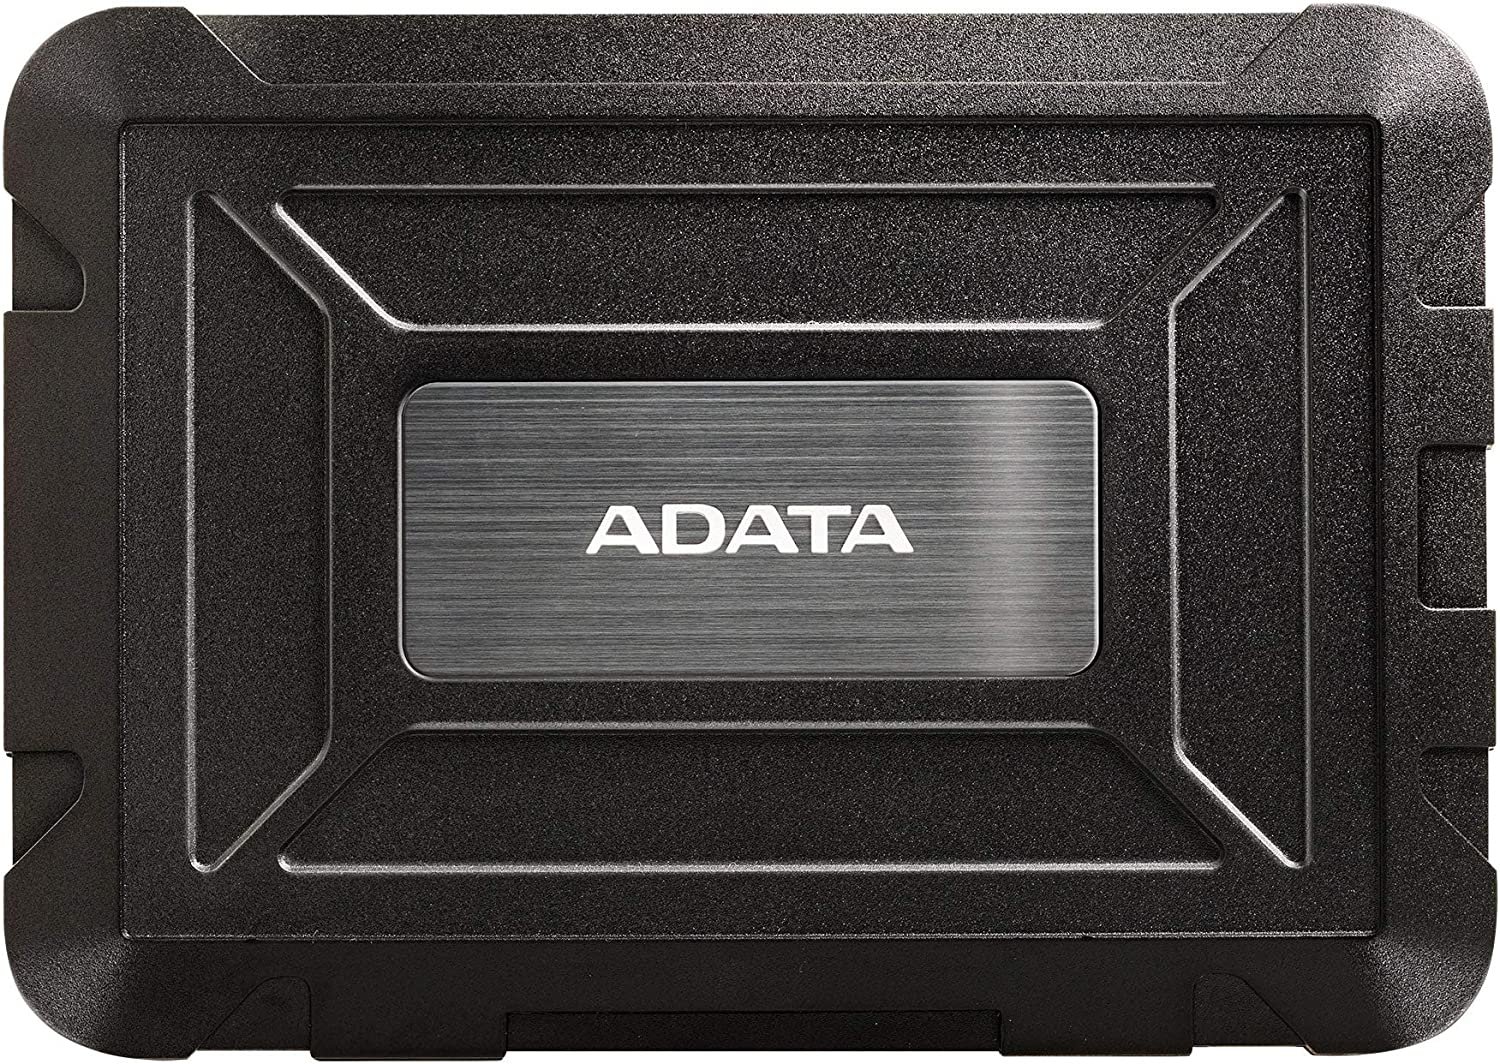 ADATA ED600 USB3.1 Tool-Free Easy Swap IP54 Waterproof Shockproof Dustproof 2.5inch SSD and Hard Drive Enclosure (AED600-U31-CBK)